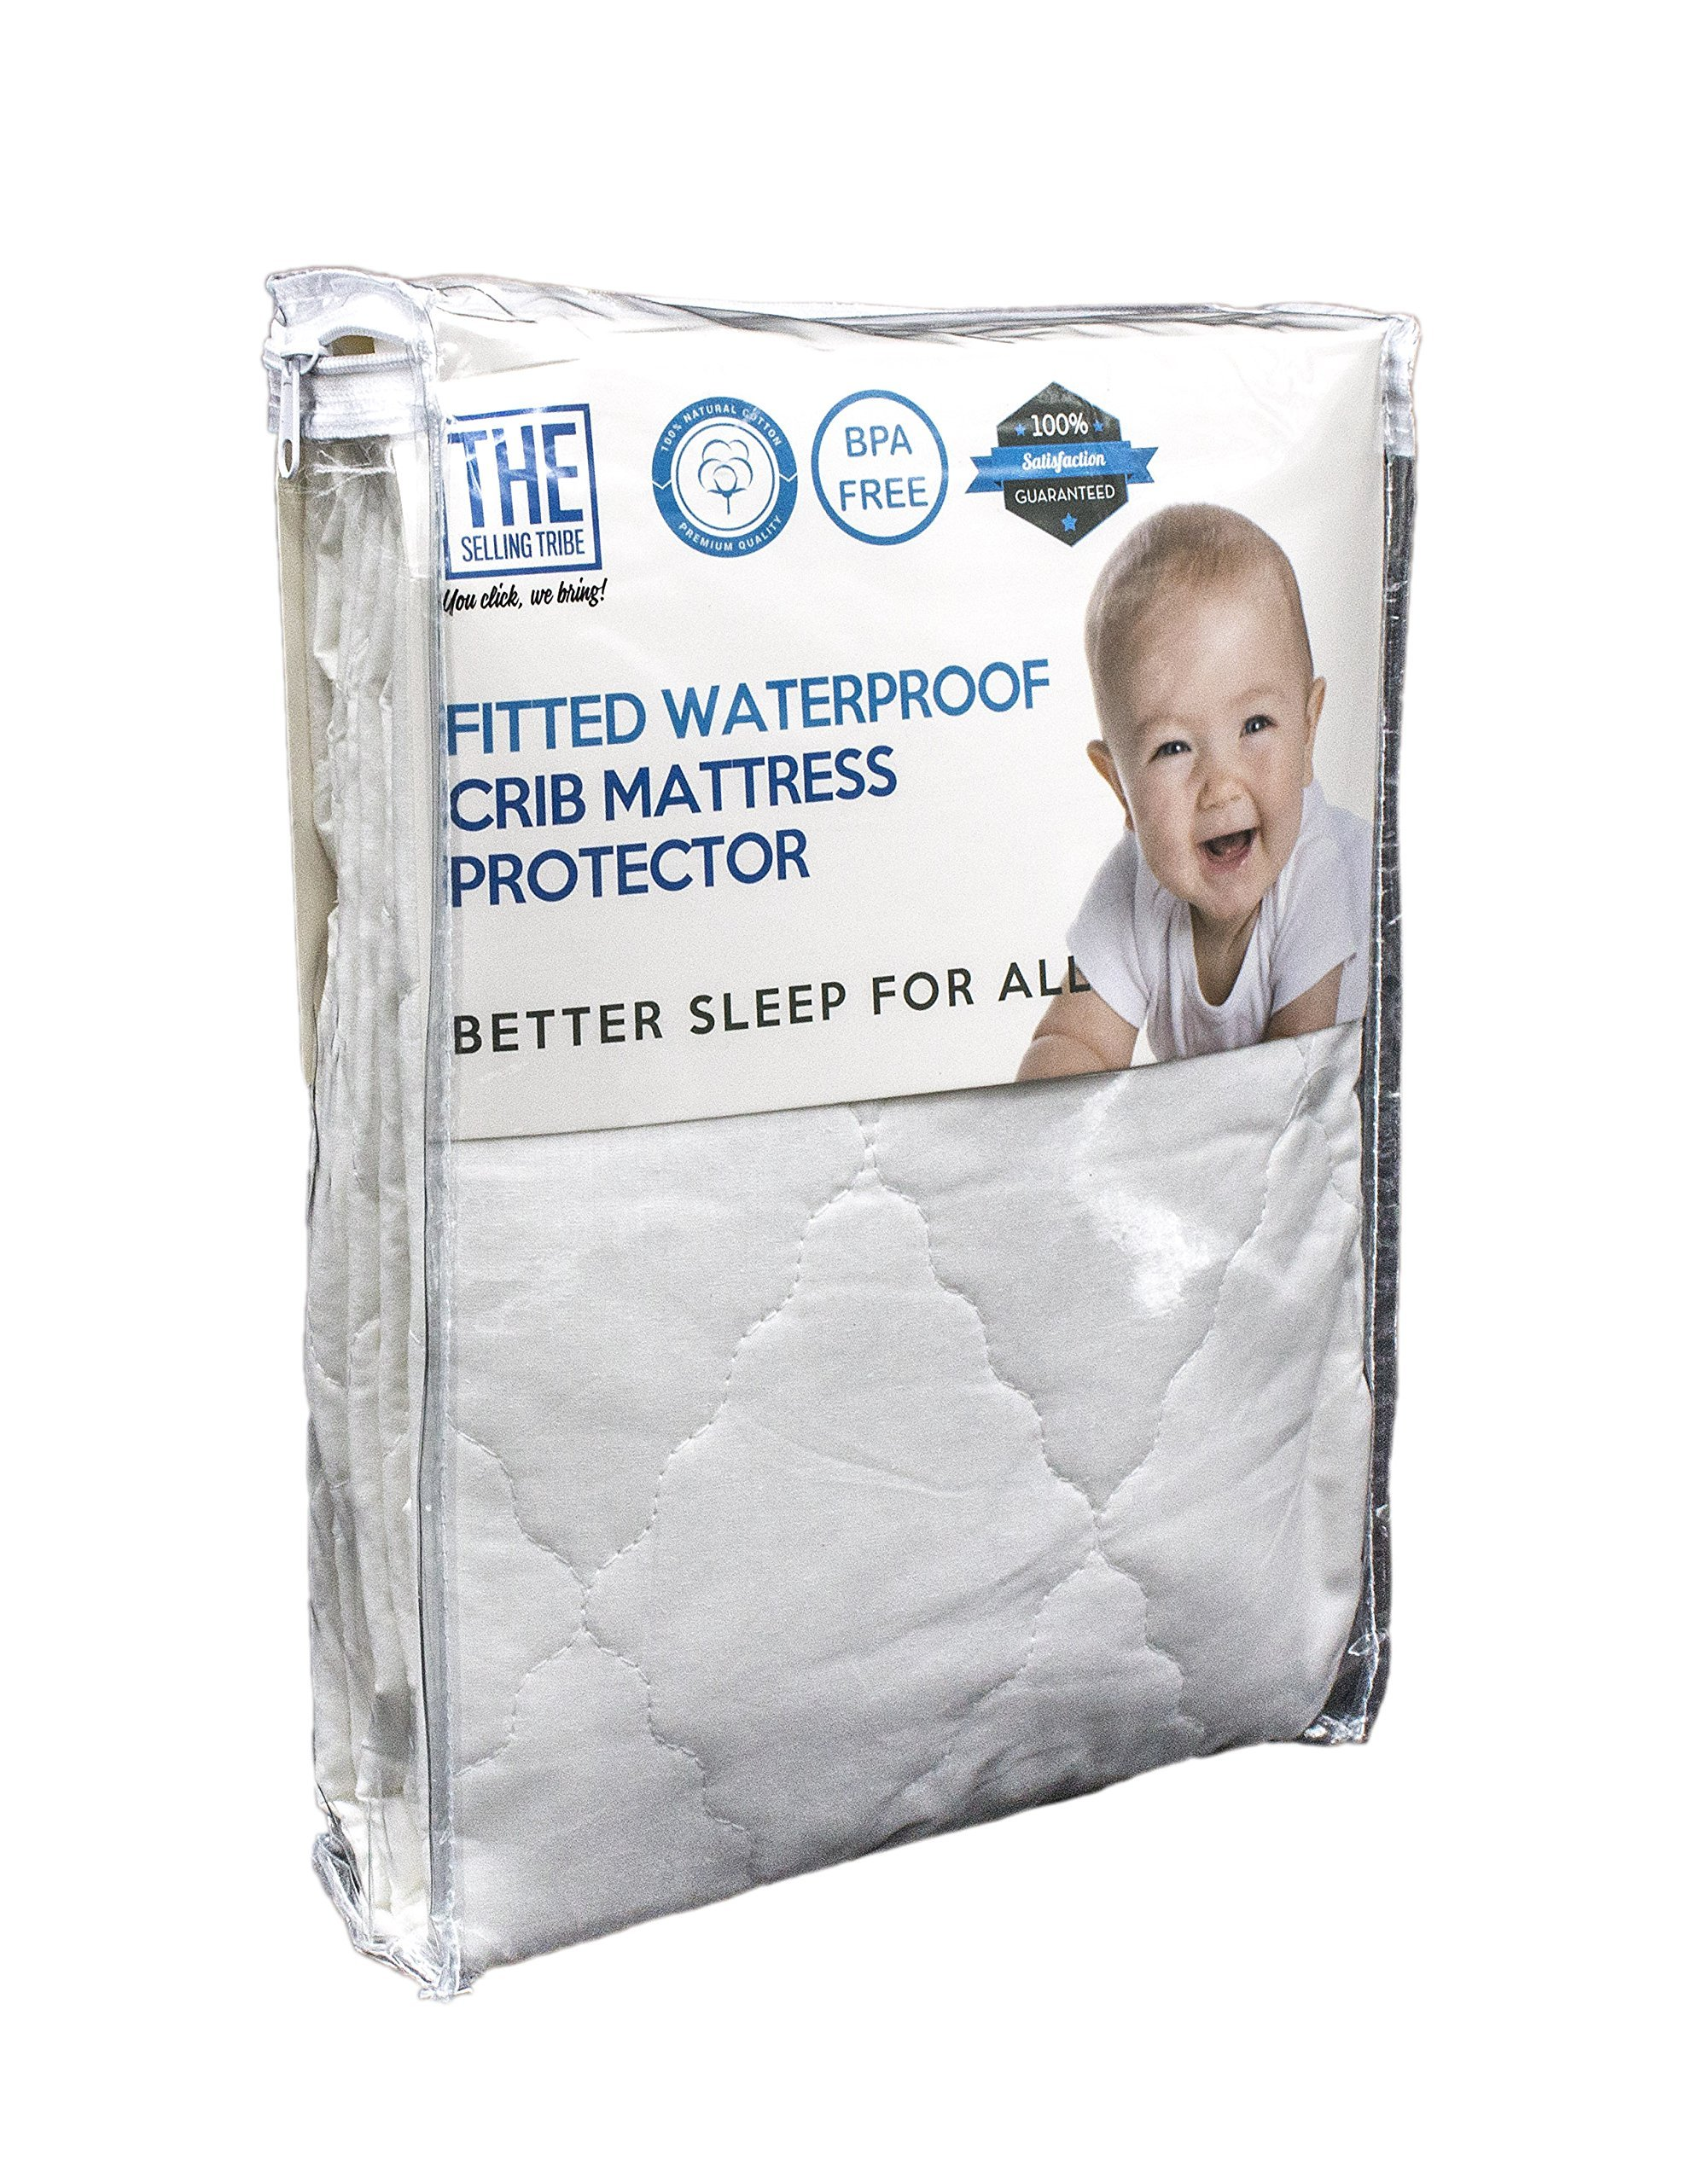 Waterproof Crib Mattress Cover | Protector and Sheet | Hypoallergenic & Breathable Cotton, Thin, Smooth & Elastic Fabric For A Snug Fit | Protects Baby,Toddler Against Dust Mites & Fluids